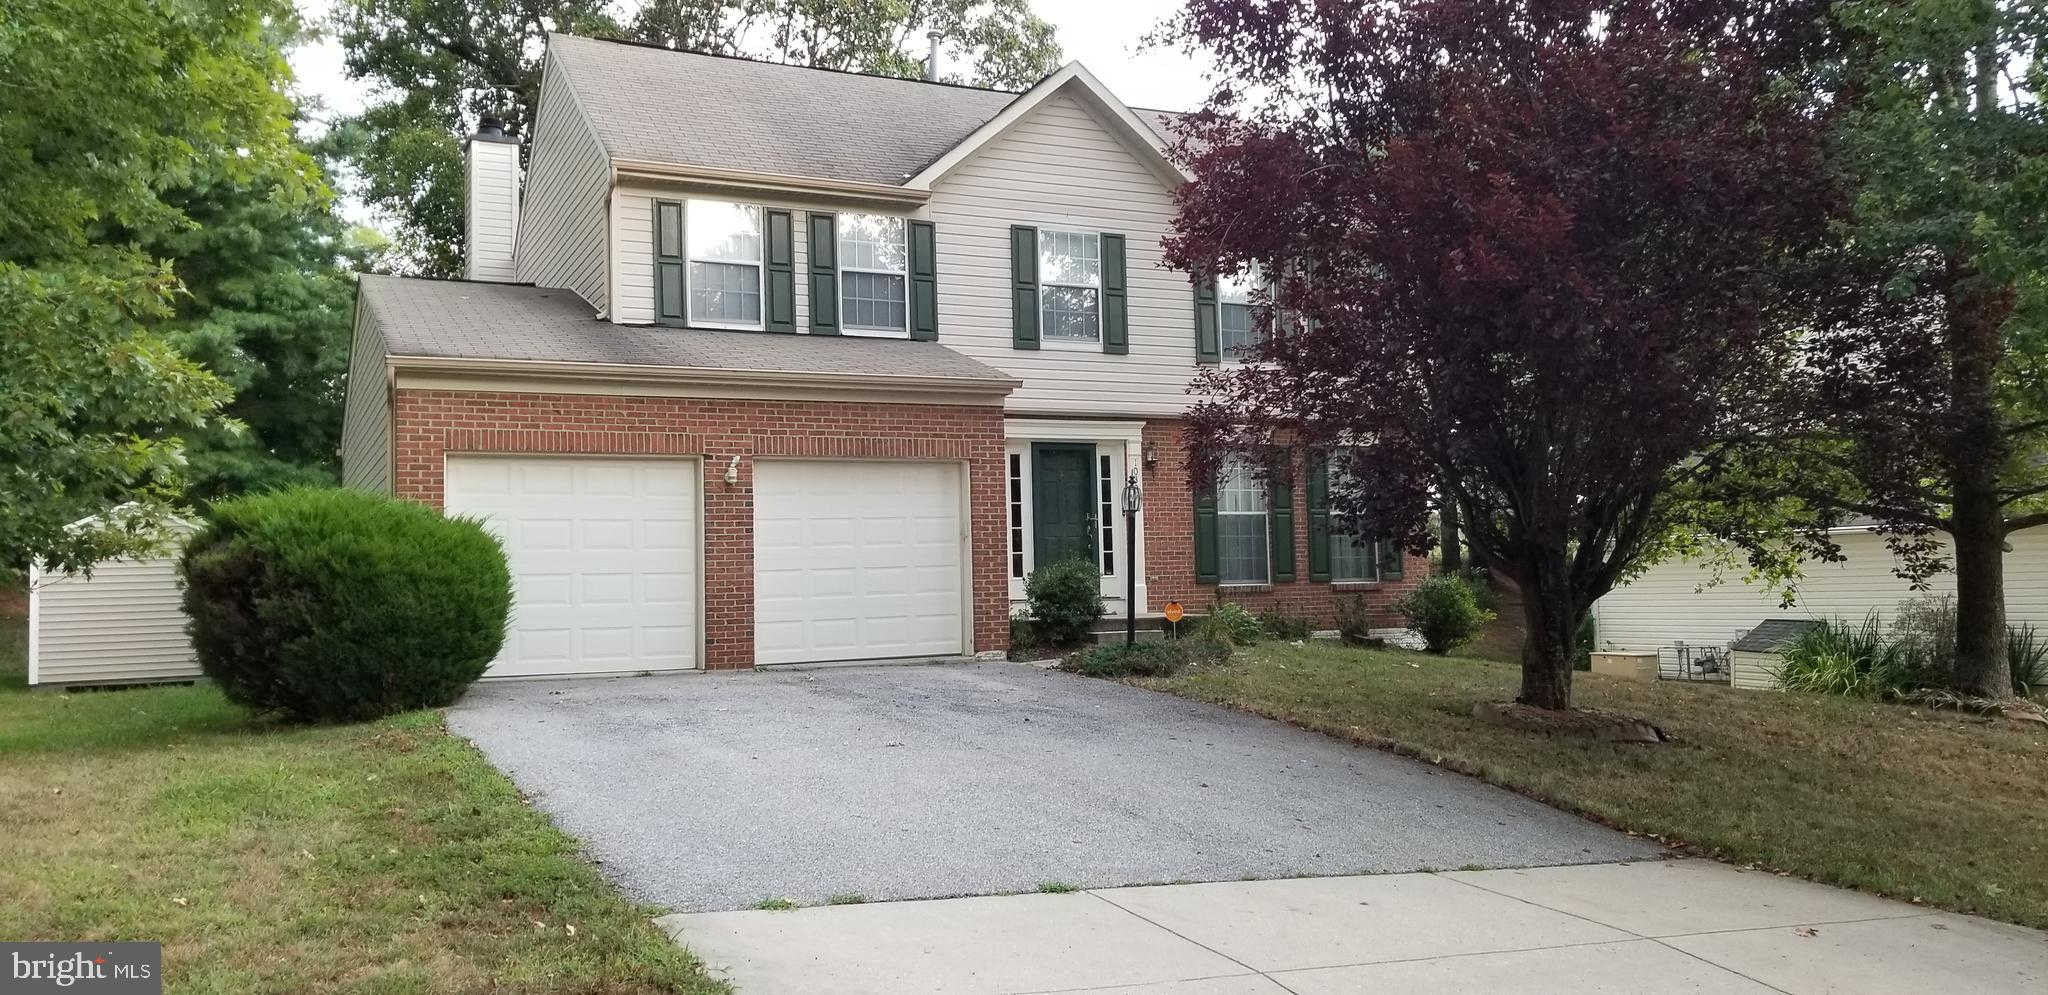 10304 Bending Brook Way, Upper Marlboro, MD 20772 is now new to the market!